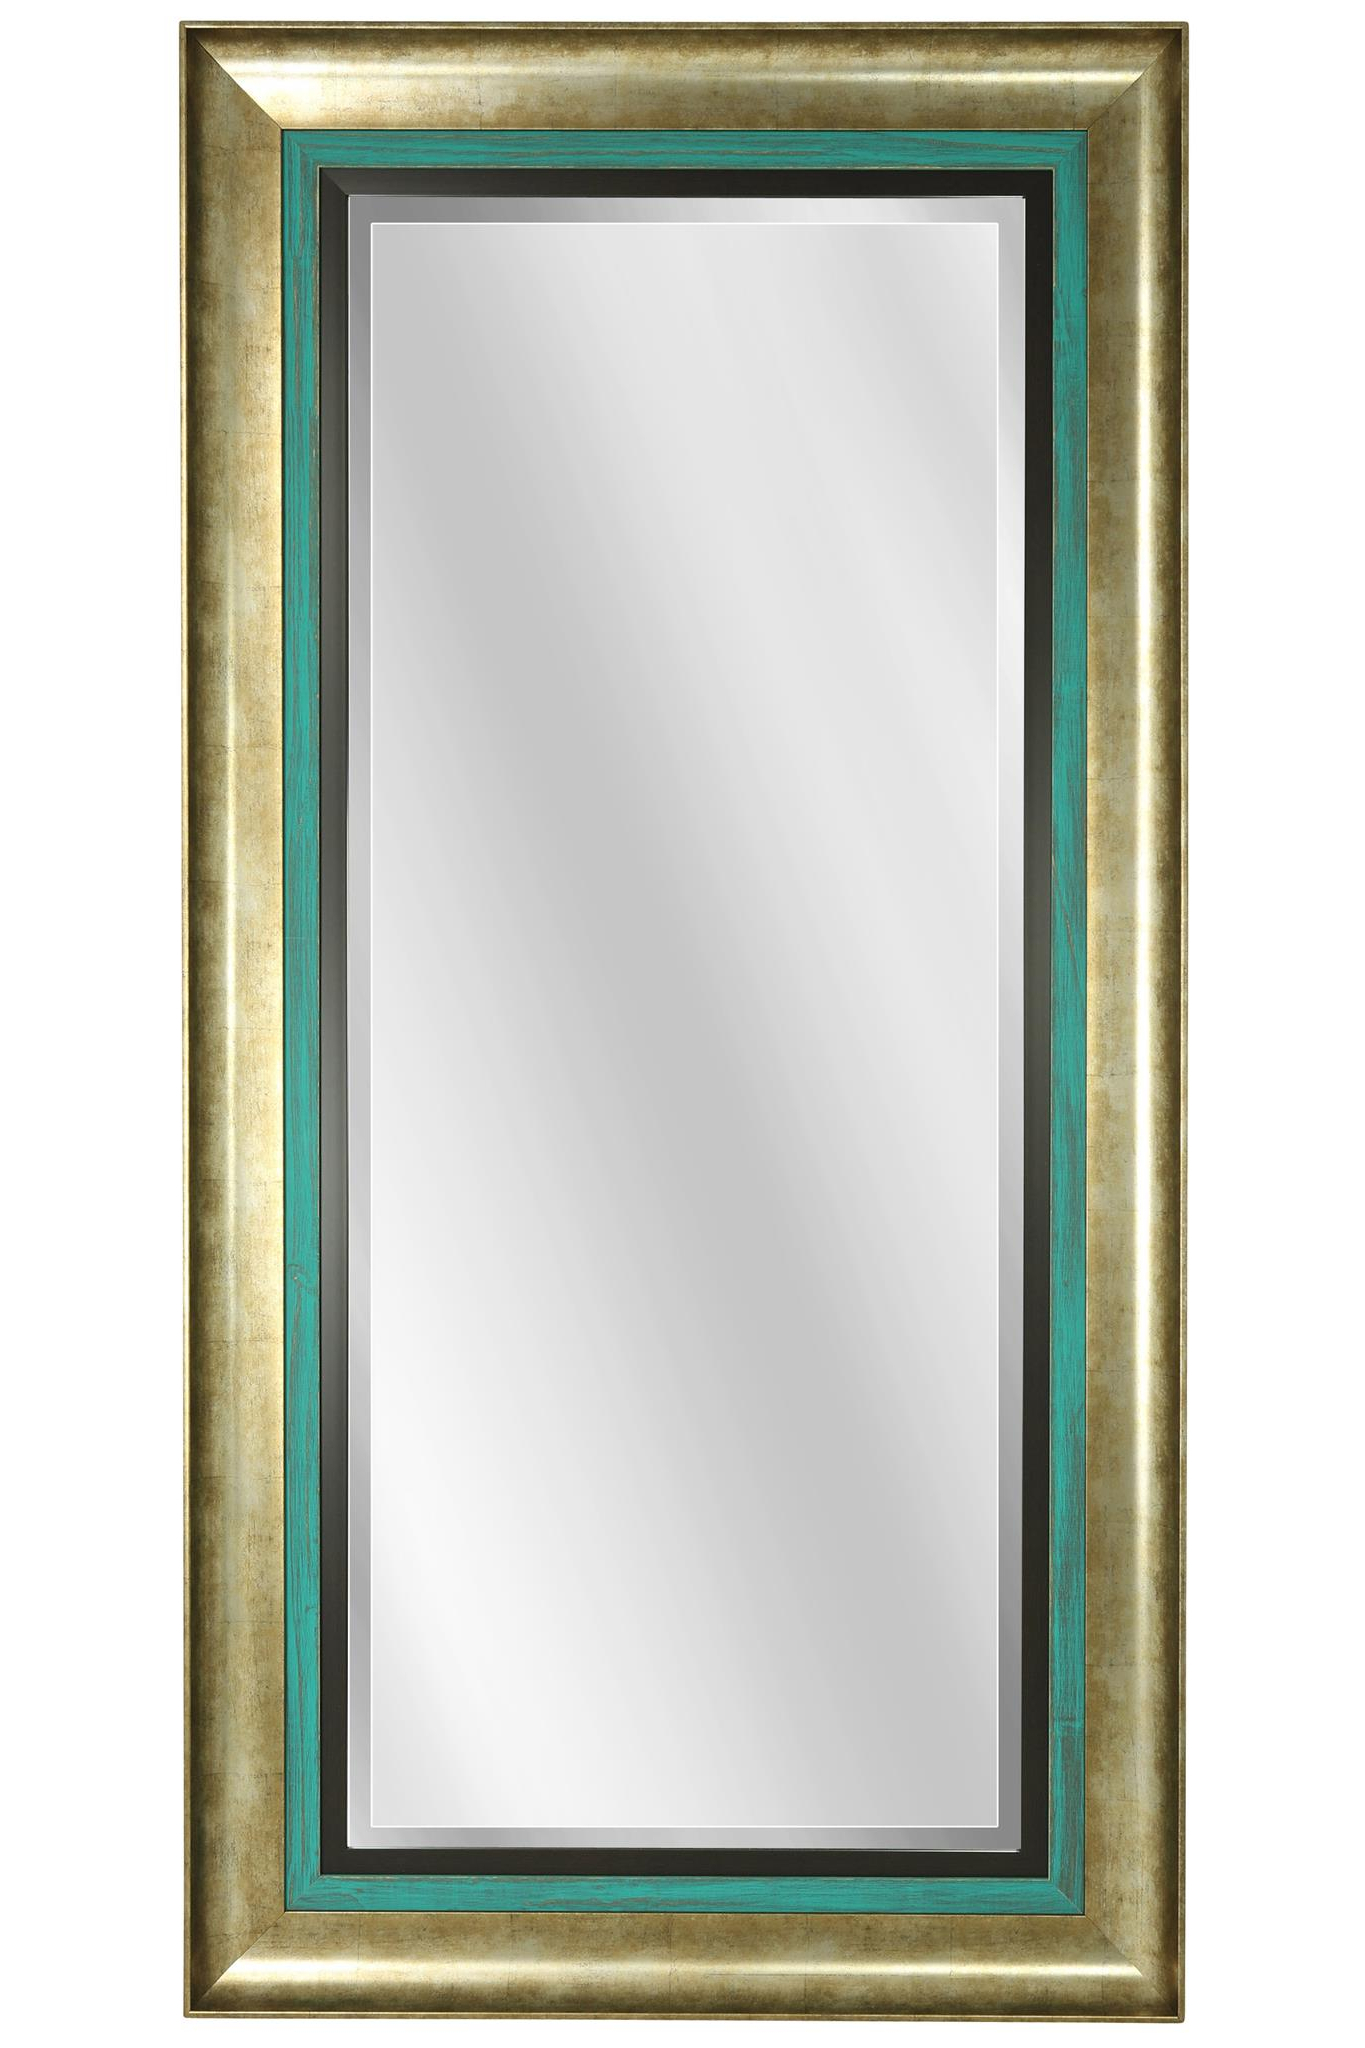 Most Recently Released Framed Wall Mirrors Throughout Gold And Turquoise Framed Wall Mirror (View 16 of 20)